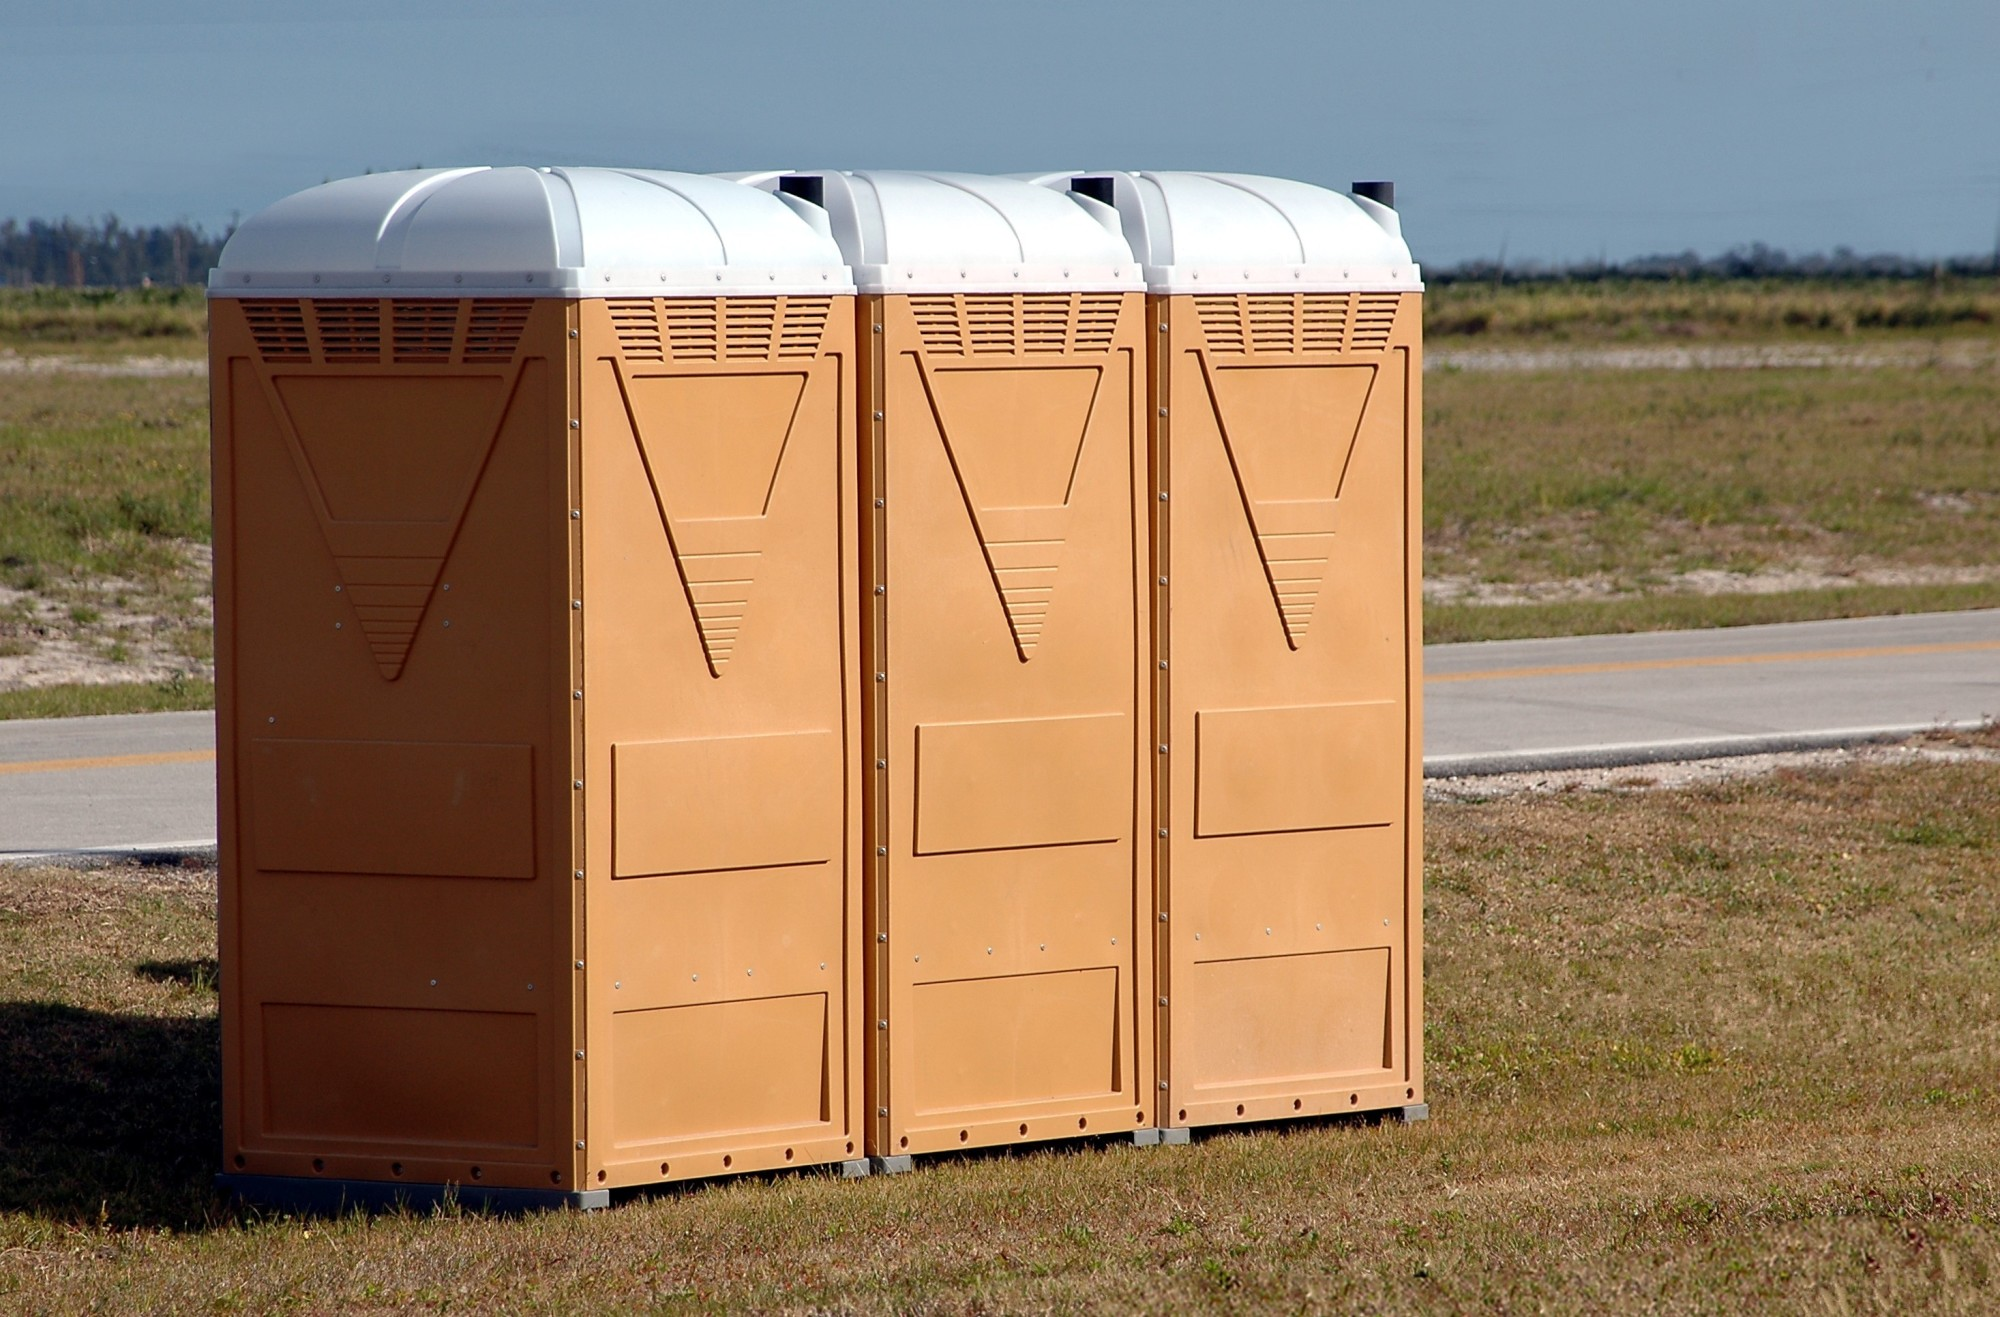 Porta Potties on a Field